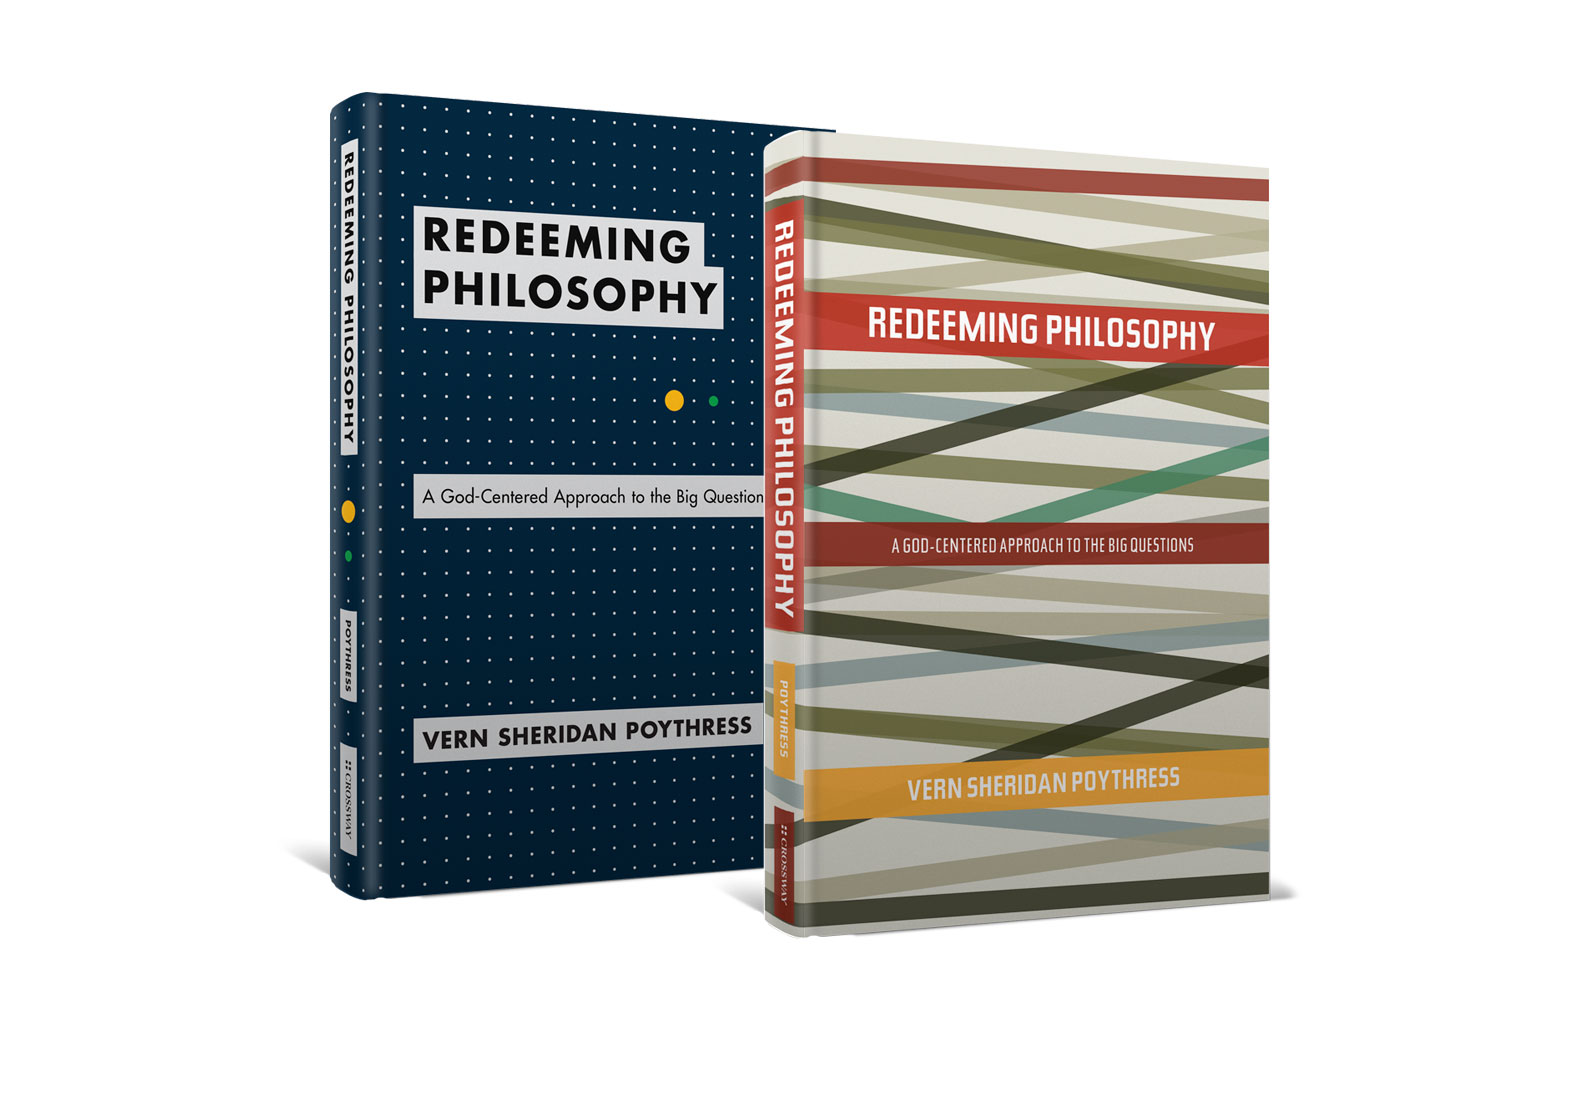 RedeemingPhilosophy-all